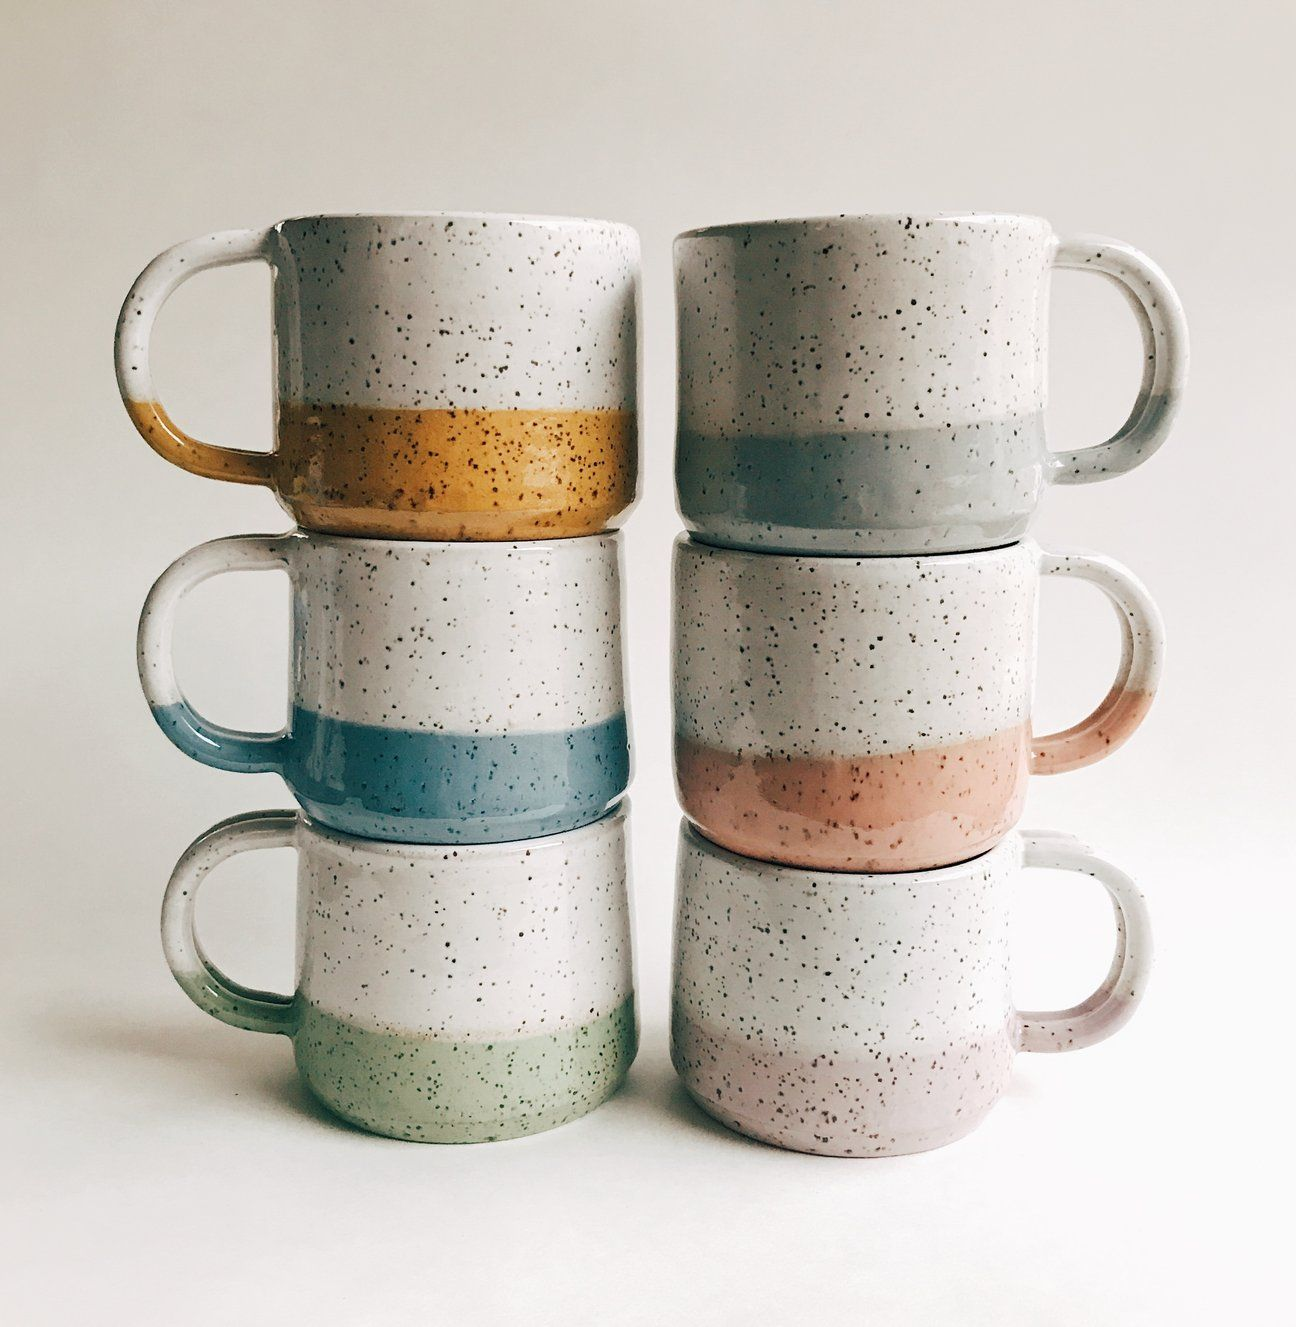 Freckled Pottery - handmade pottery based in North Texas